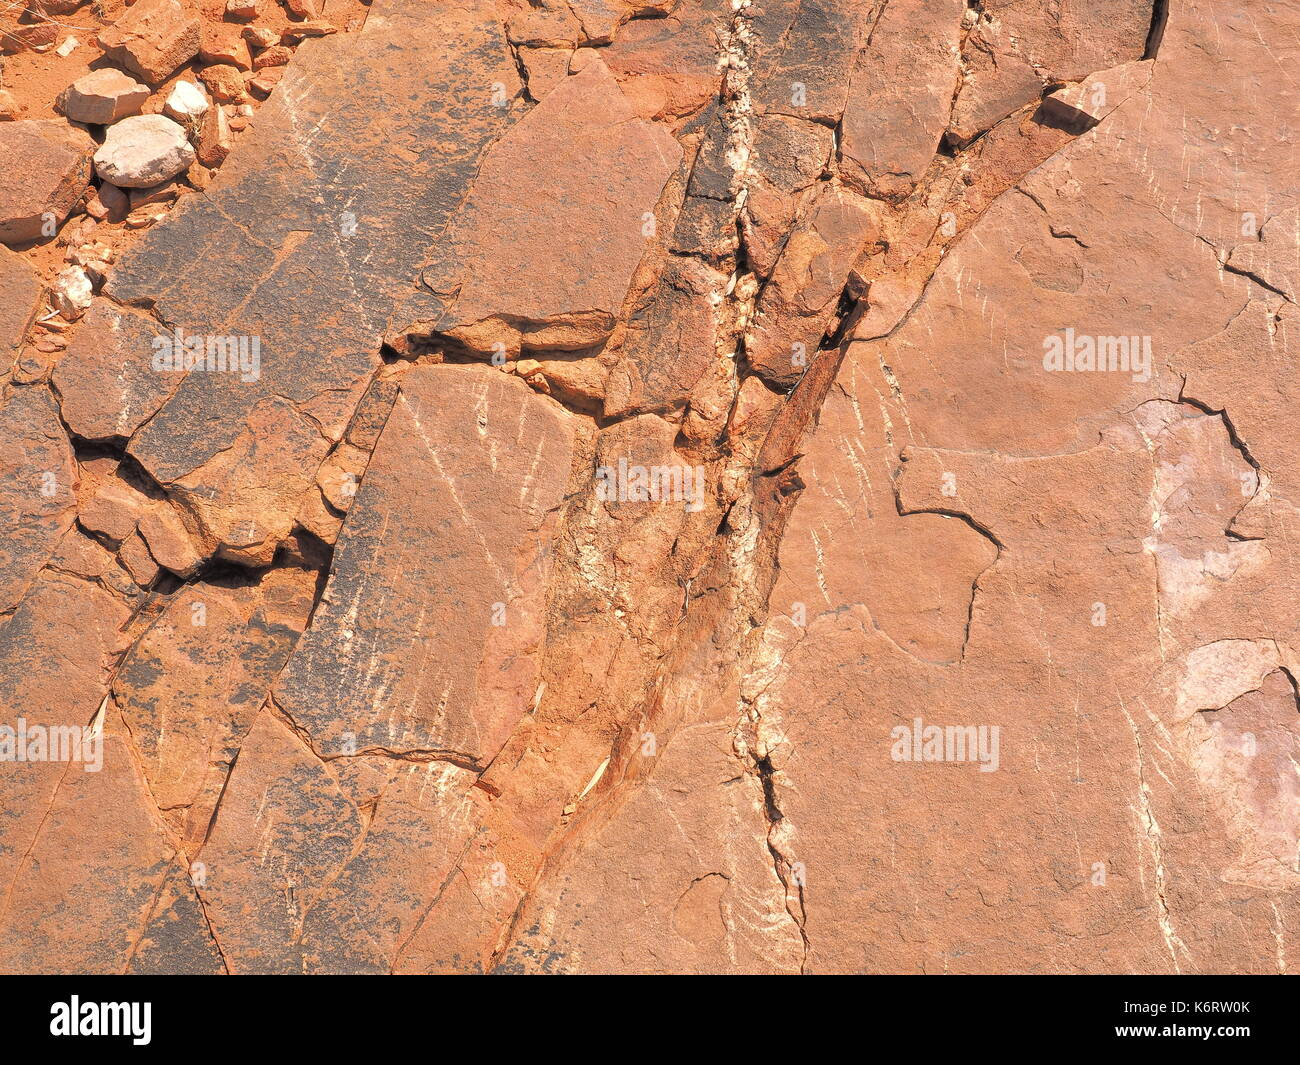 Red rock surface east MacDonnell ranges near Alice Springs, Northern Territory, Australia 2017 - Stock Image